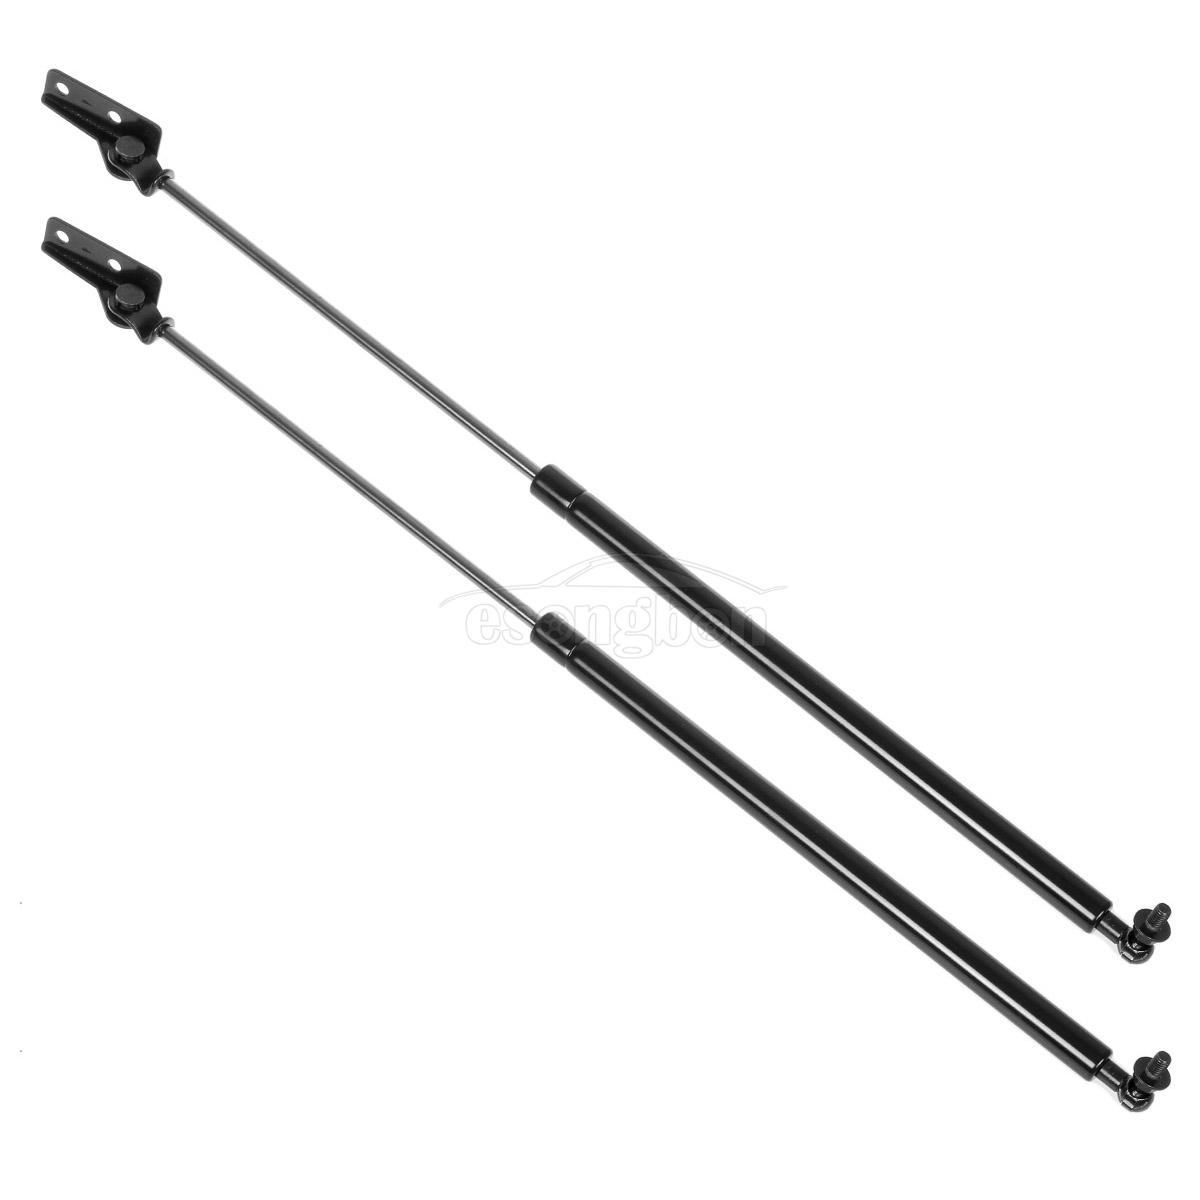 2pcs Lift Supports Strut Rod Replacement For Geo Metro